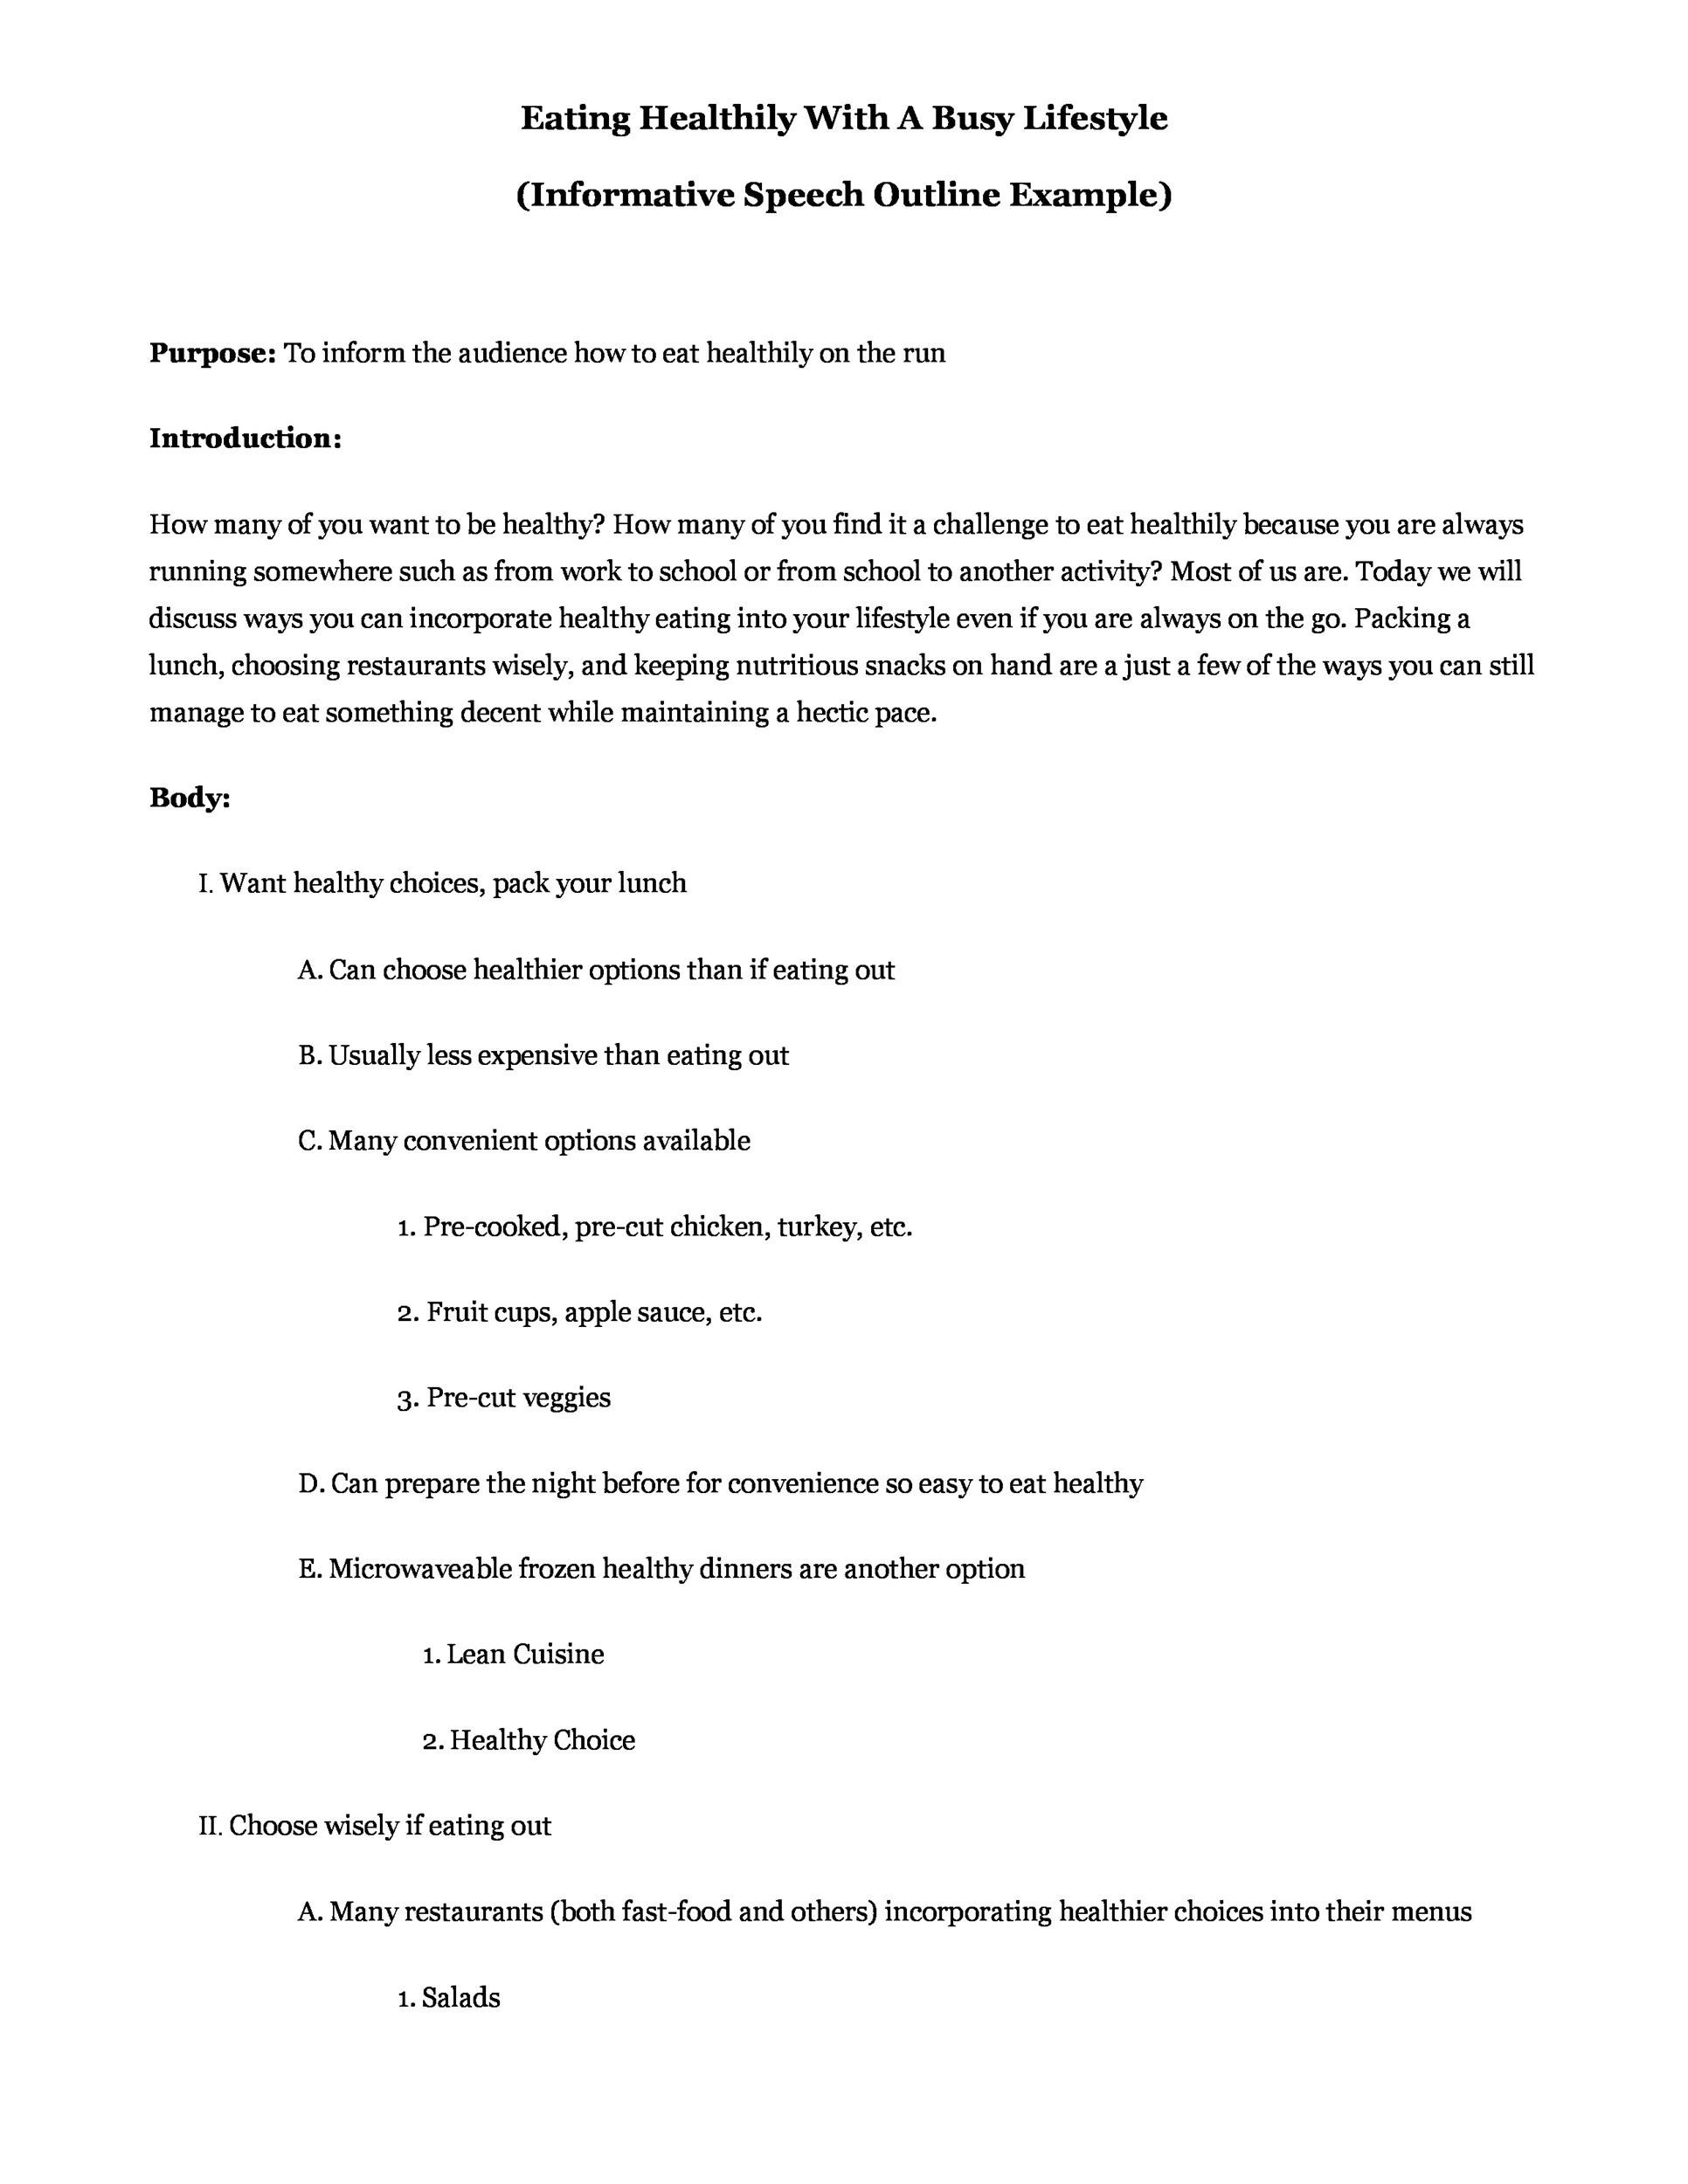 Free Informative Speech Outline 02